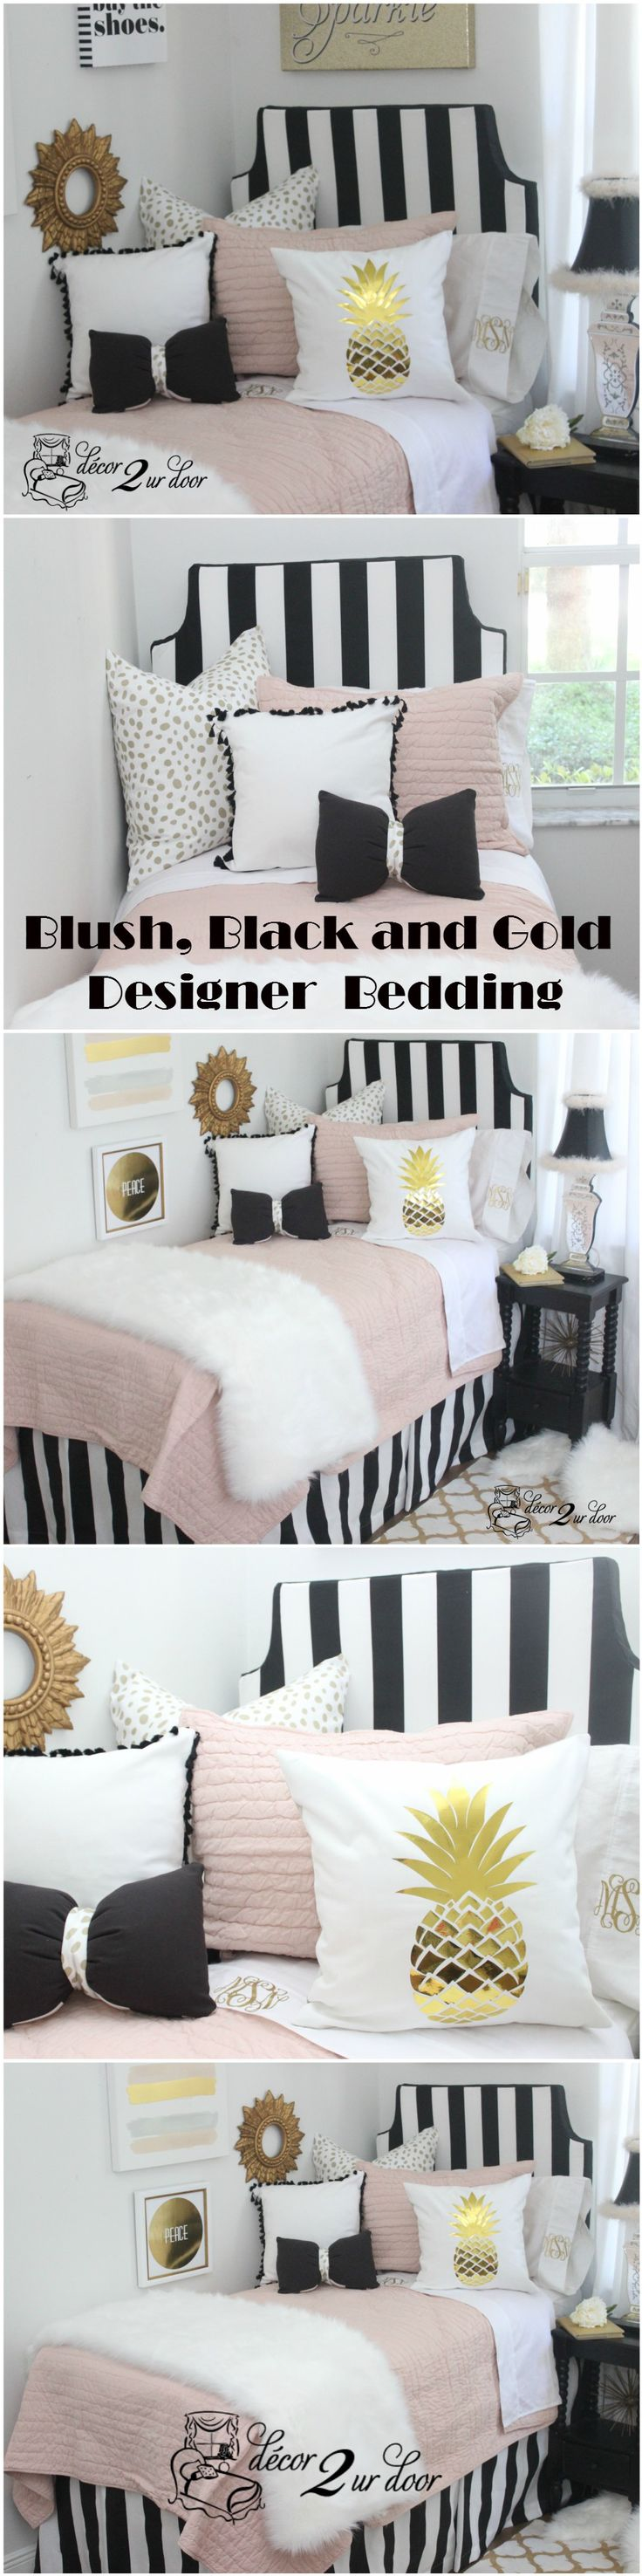 Black and white and pink bedrooms - Best 25 Pink Black Bedrooms Ideas On Pinterest Pink Teen Bedrooms Black Gold Decor And Teen Bedroom Colors